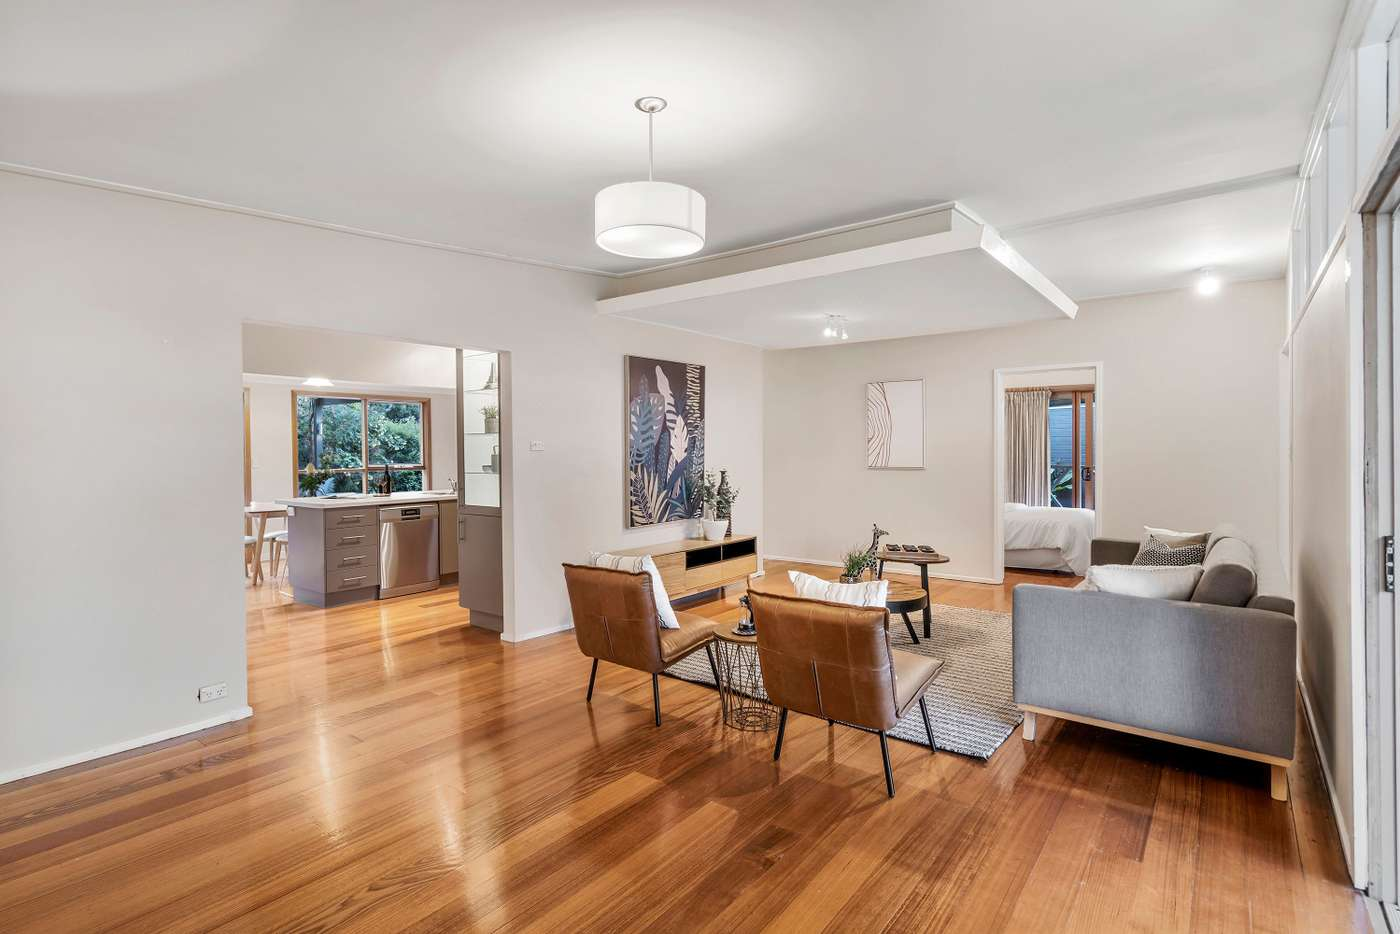 Sixth view of Homely house listing, 7 Stratford Court, Mulgrave VIC 3170